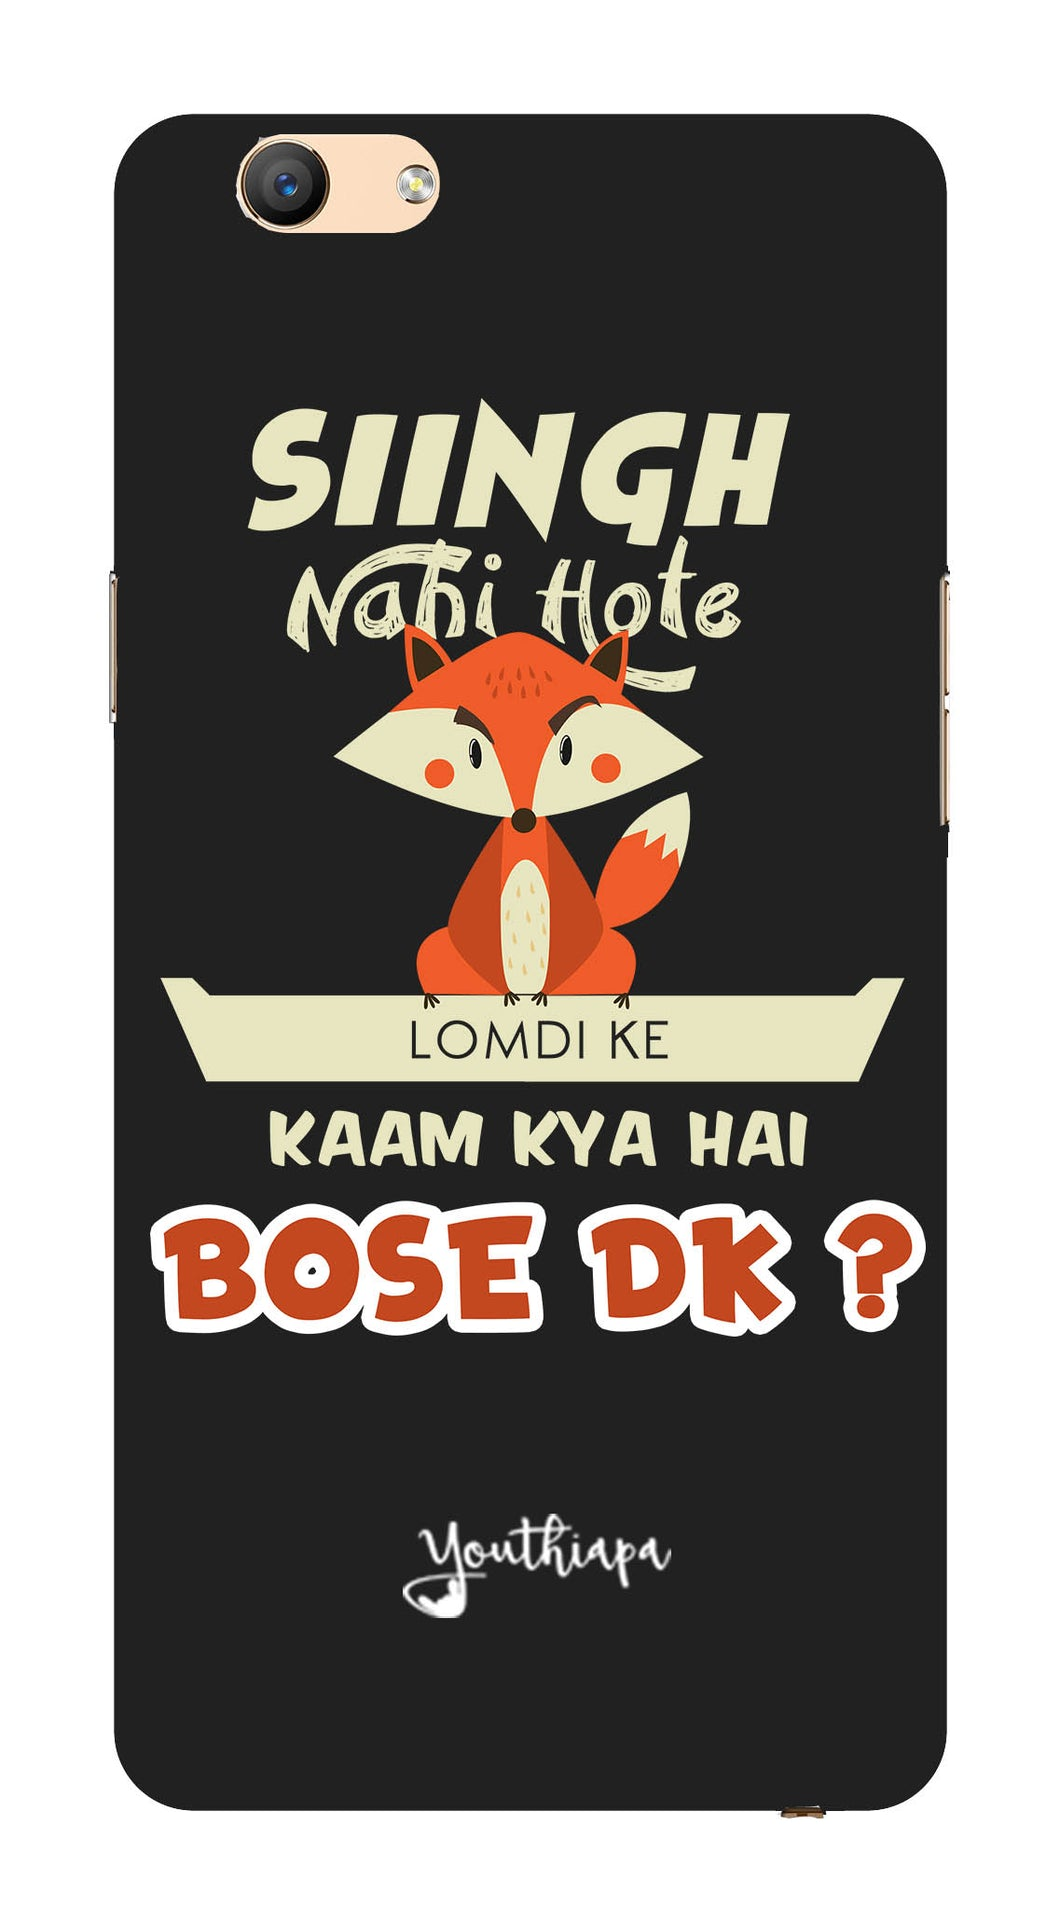 Singh Nahi Hote for OPPO A57